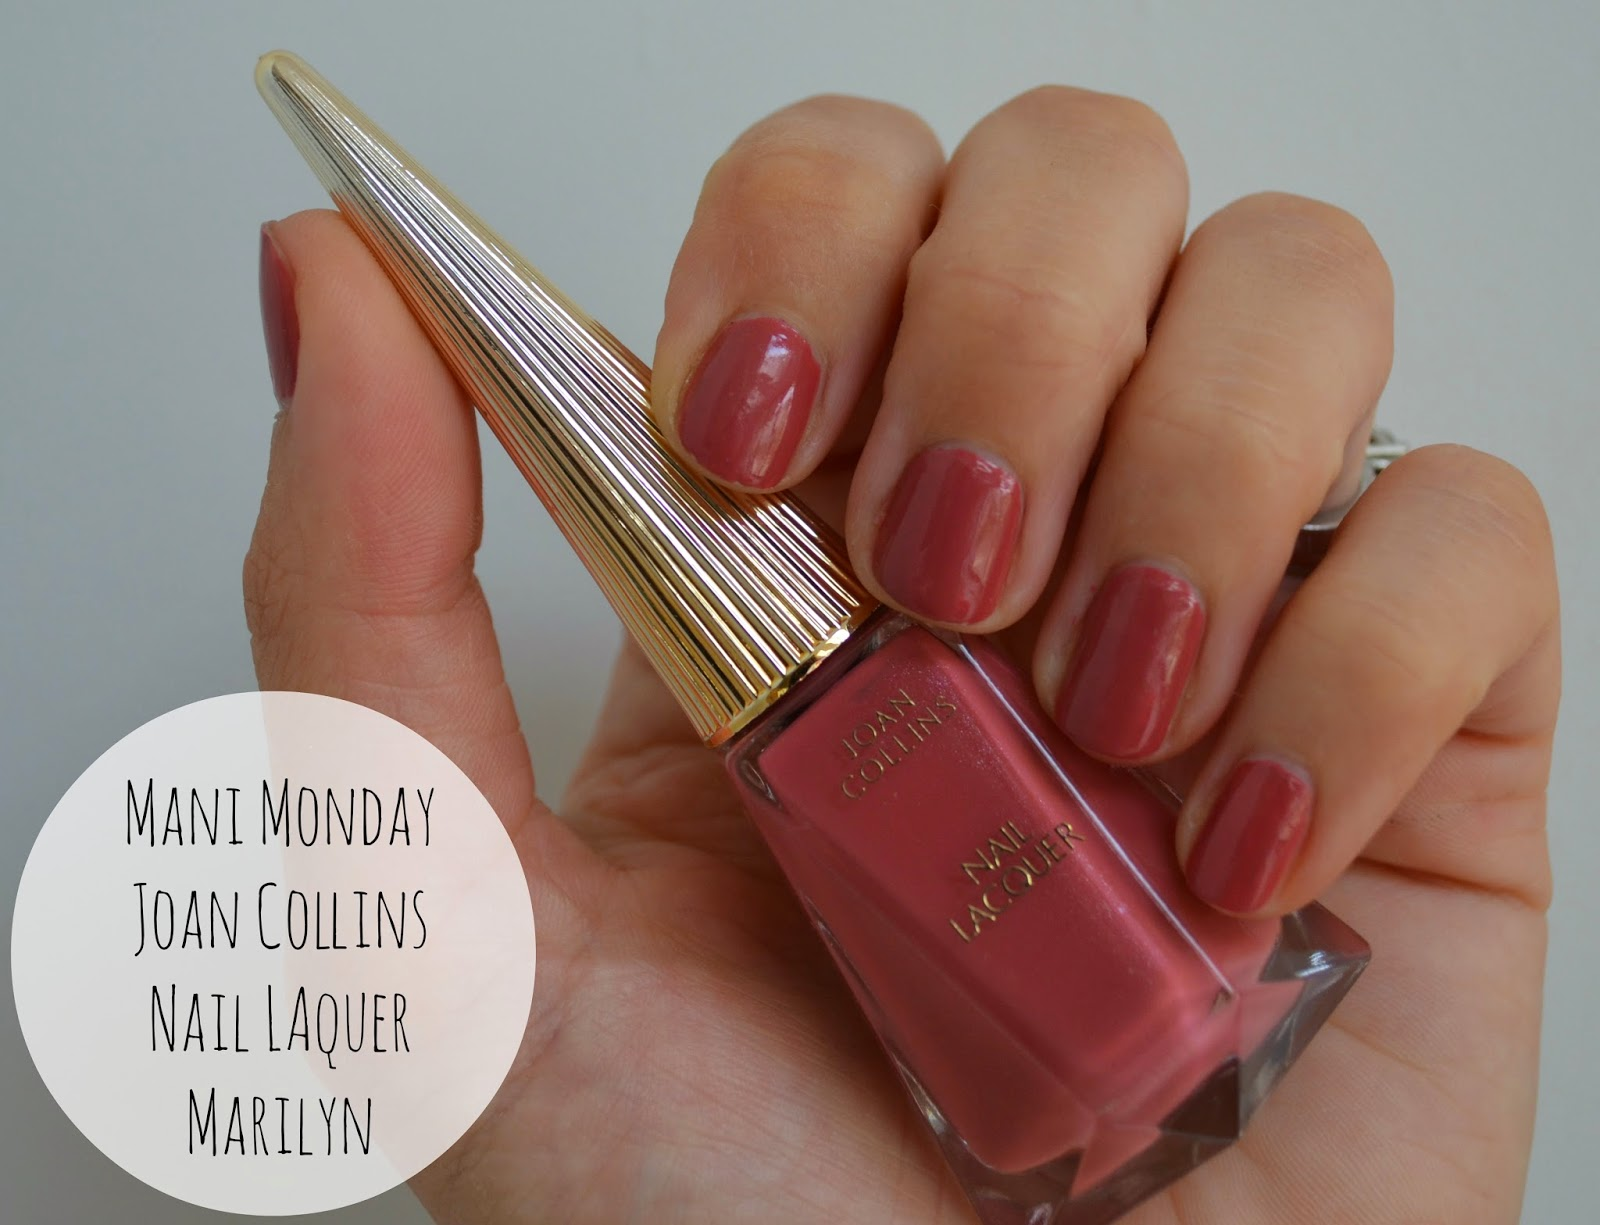 Joan Collins Timeless Beauty Nail Laquer in Marilyn